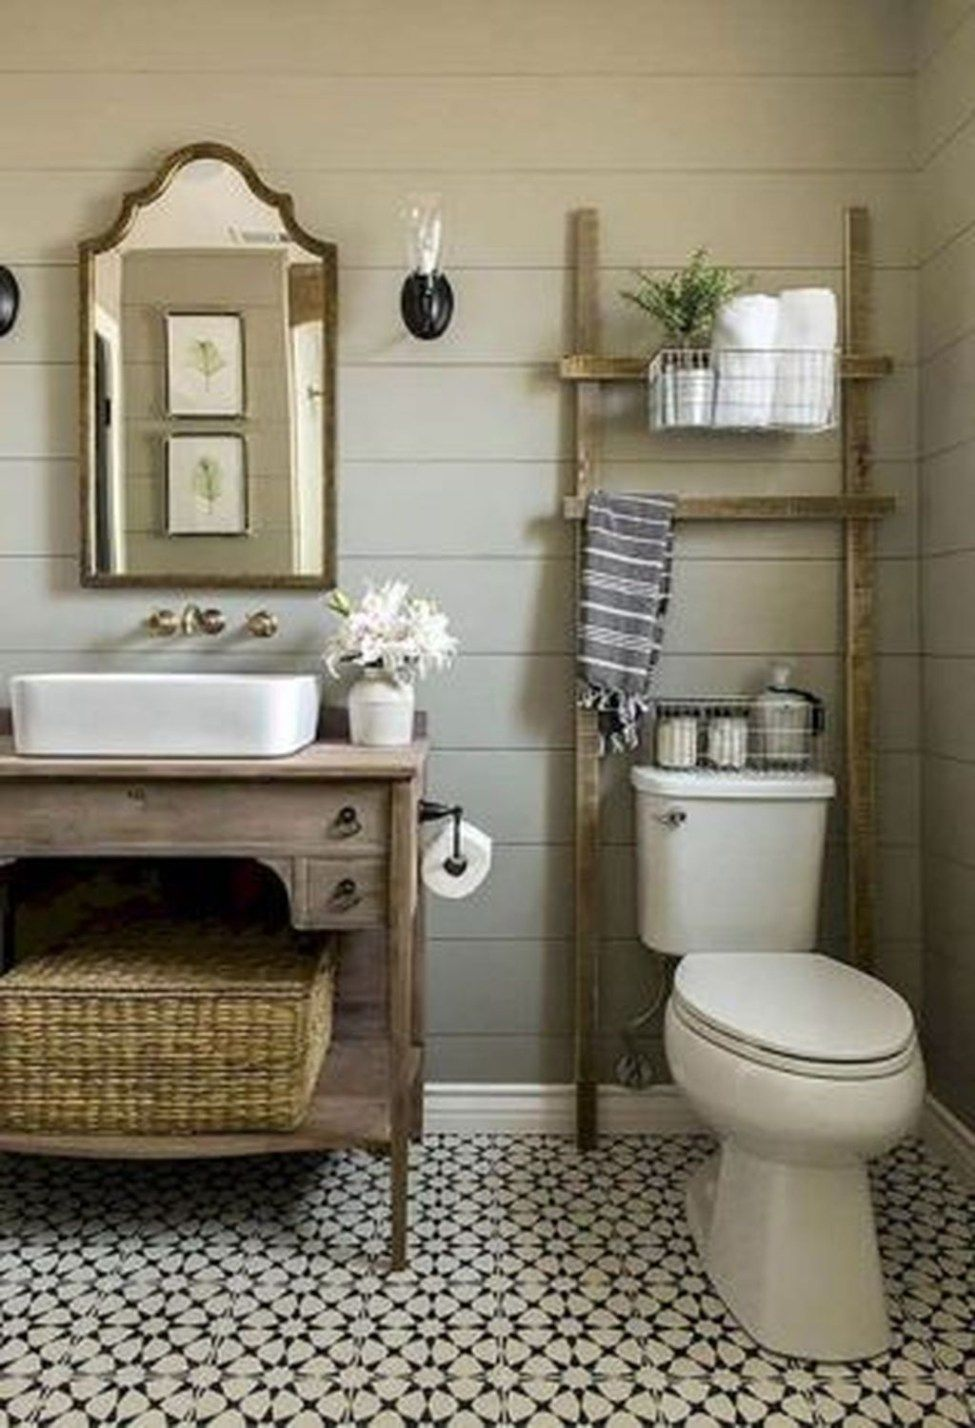 51 Industrial Rustic Master Bathroom Design Ideas For A ... on narrow shower ideas, family room design ideas, narrow bathroom shelving ideas, narrow bathroom sink ideas, narrow half bath designs, narrow front porch design ideas, narrow bathroom ideas on a budget, small narrow bathroom remodeling ideas, narrow bathroom design plans, long narrow bathroom ideas, washroom design ideas, small bathroom tile ideas, rectangle bathroom decorating ideas, narrow bathroom closet ideas, den design ideas, floor design ideas, small bathroom shower ideas, narrow master bathroom design, small bathroom decorating ideas,